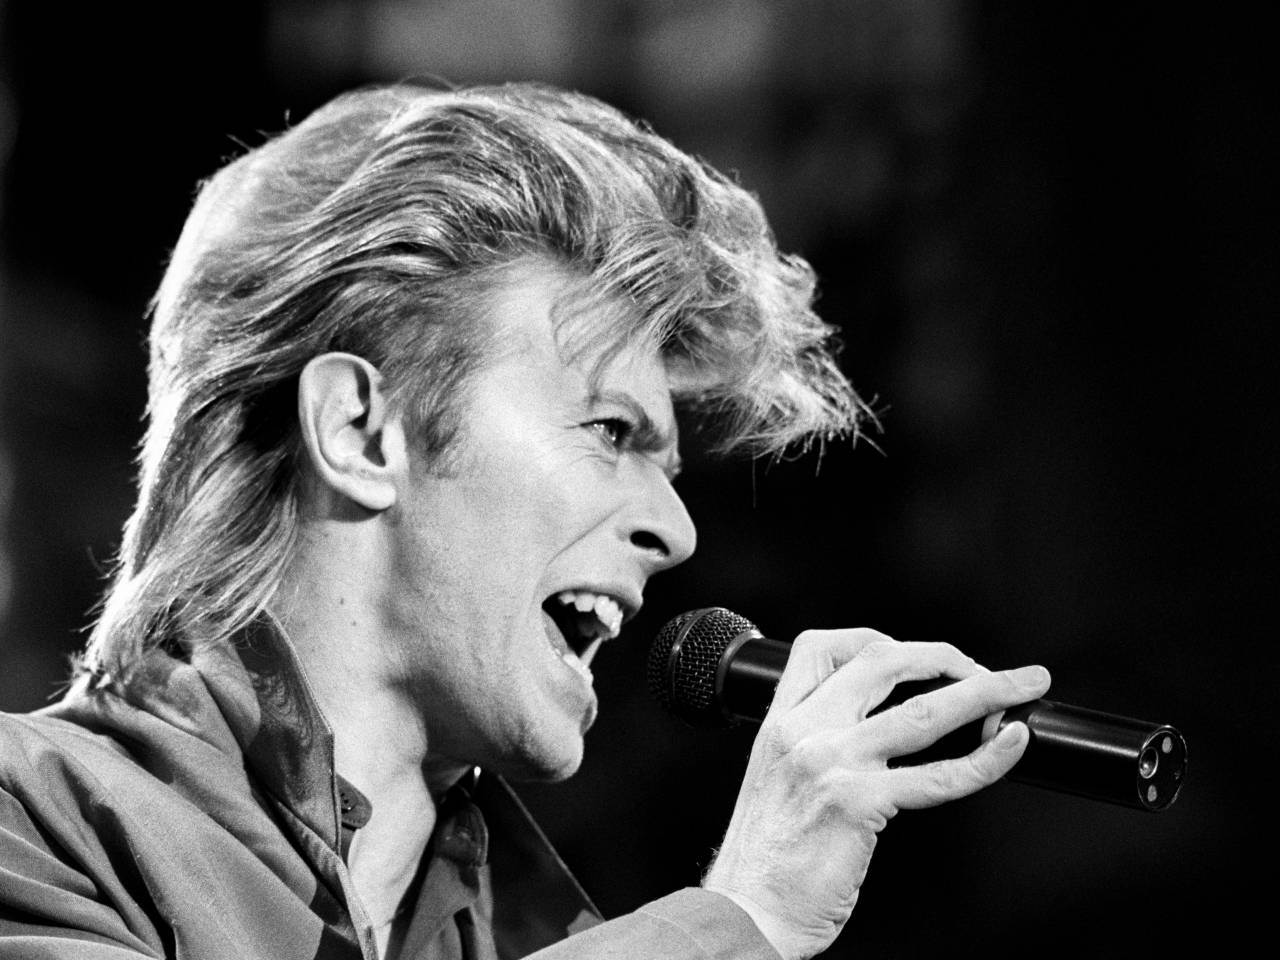 Starman: David Bowie's 10 Most Unforgettable Video Moments ...